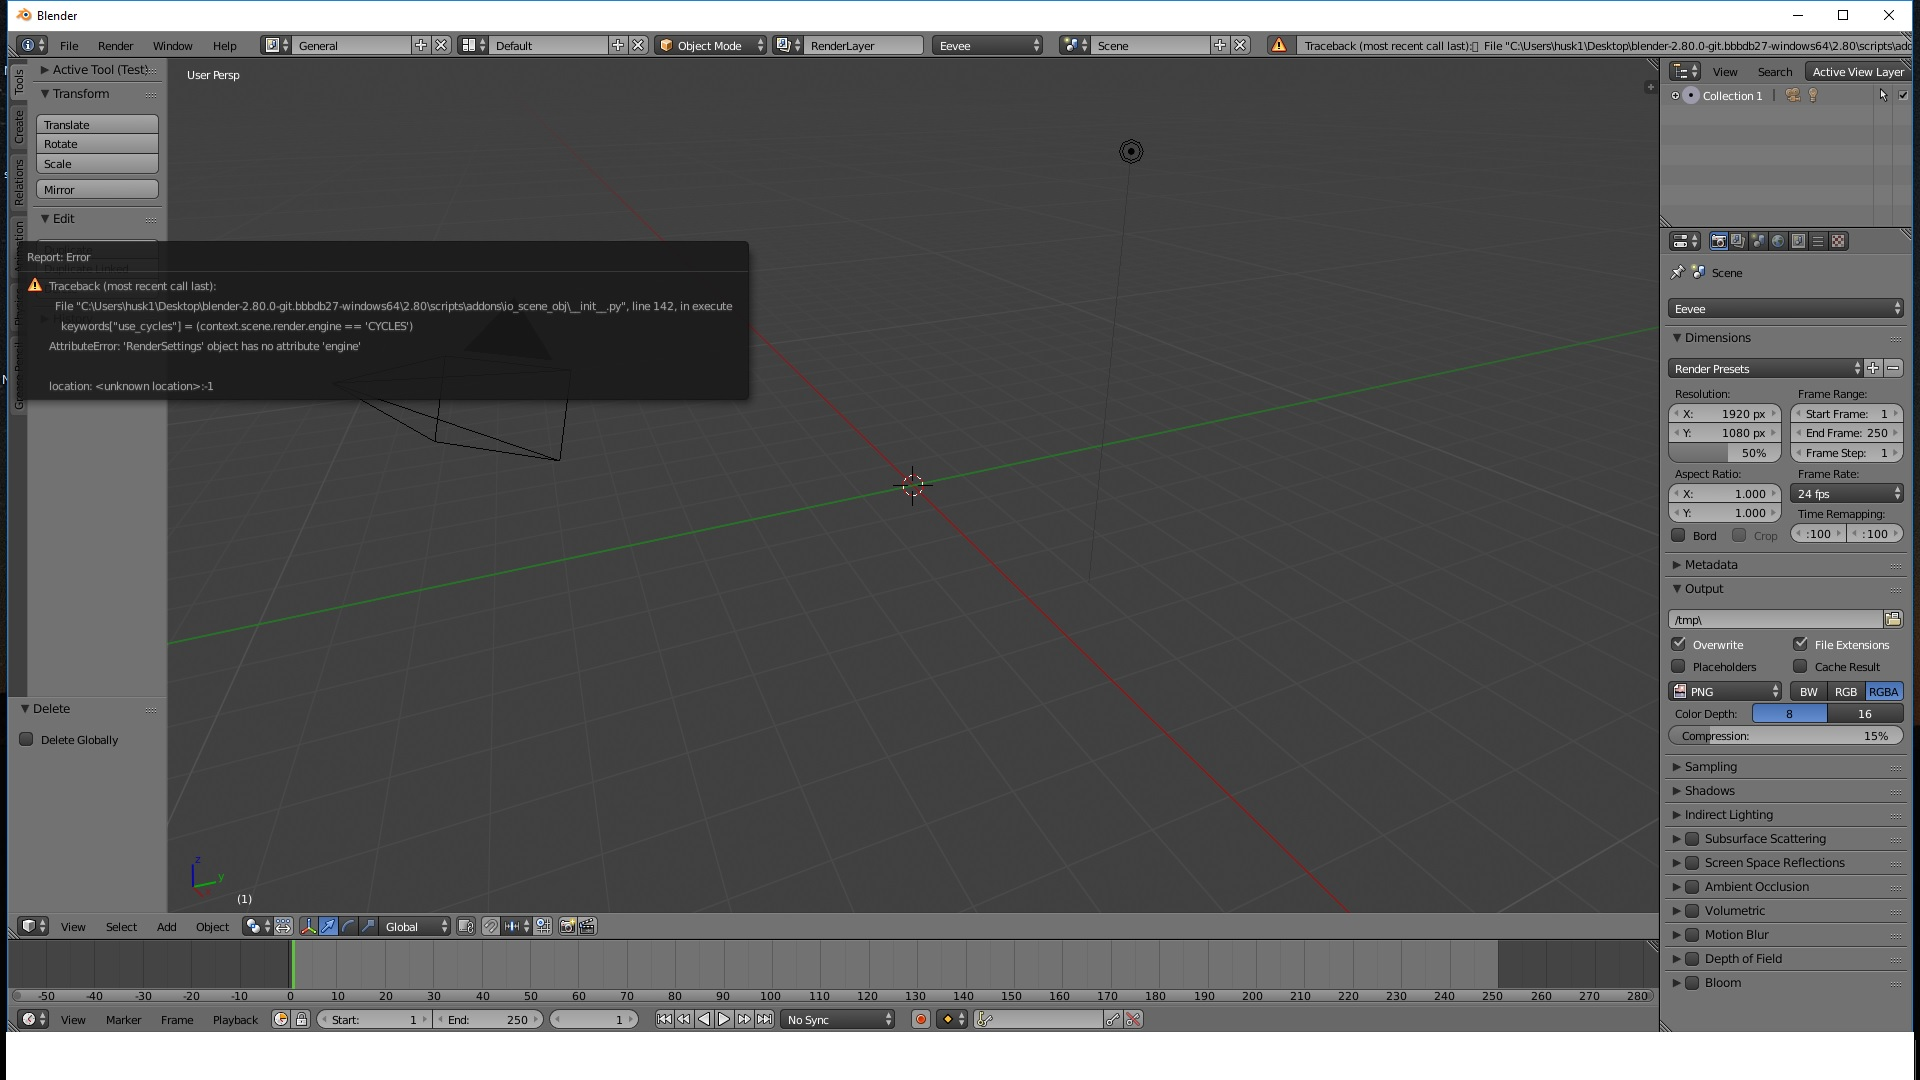 Blender 2 8 Problem importing 3ds max files - Technical Support